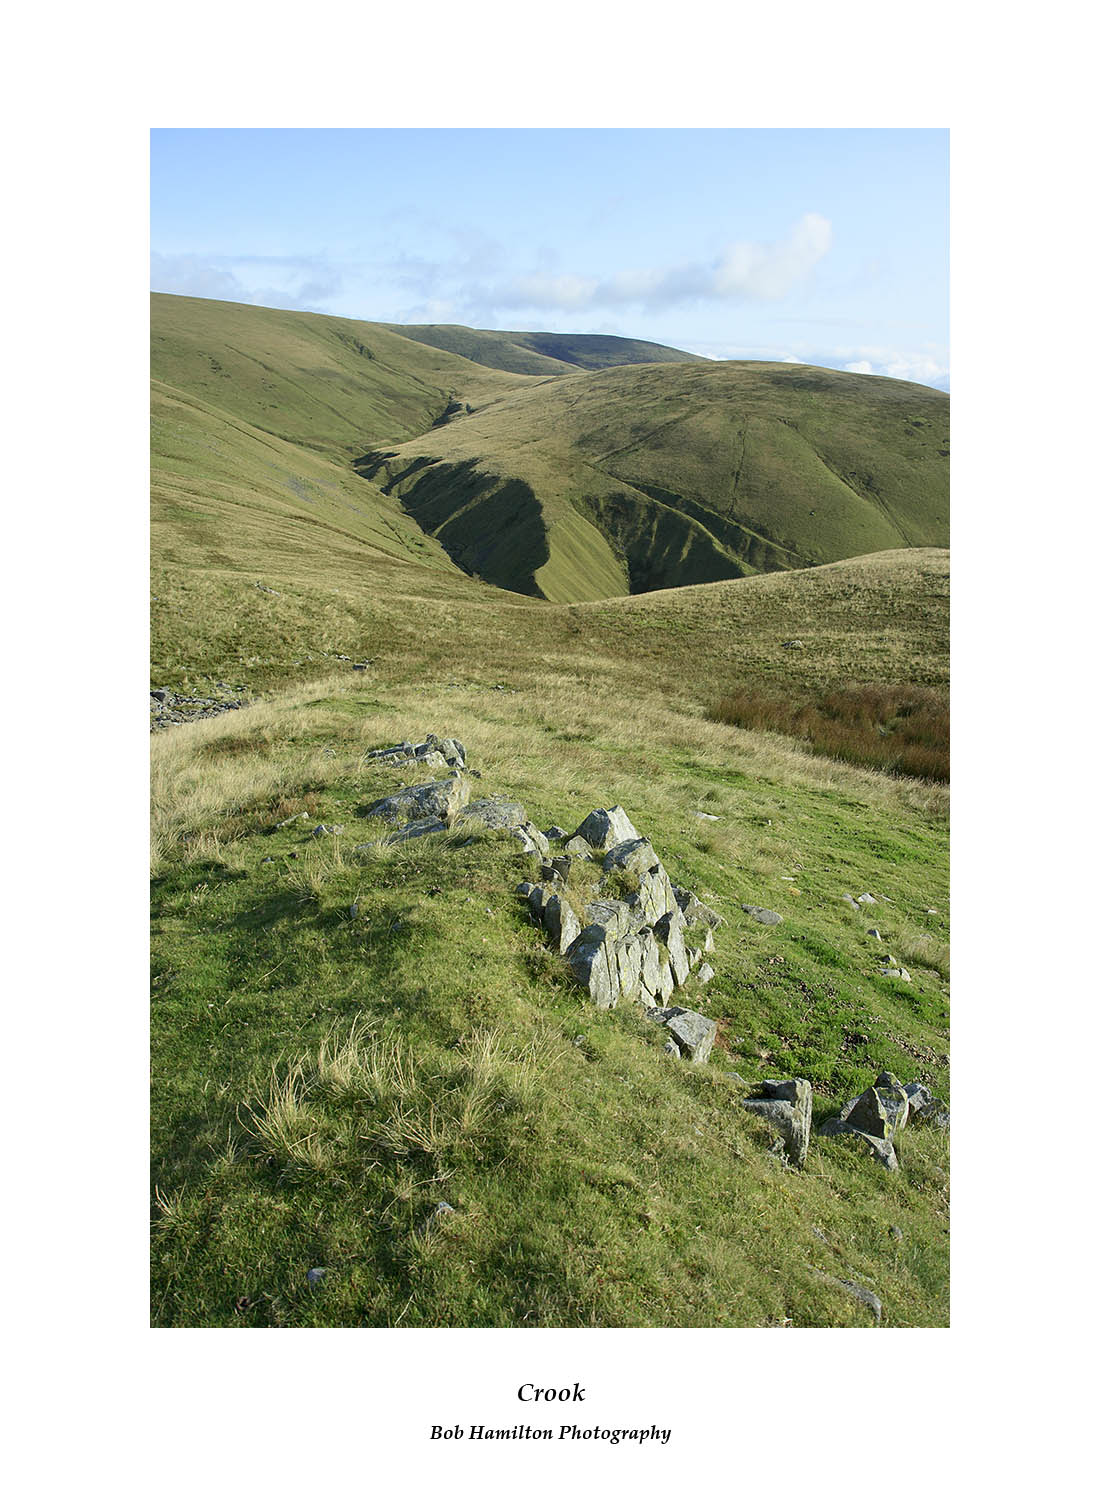 MG 2380 Ashbeck Fold and Sickers Fell from Crook the Howgill fells